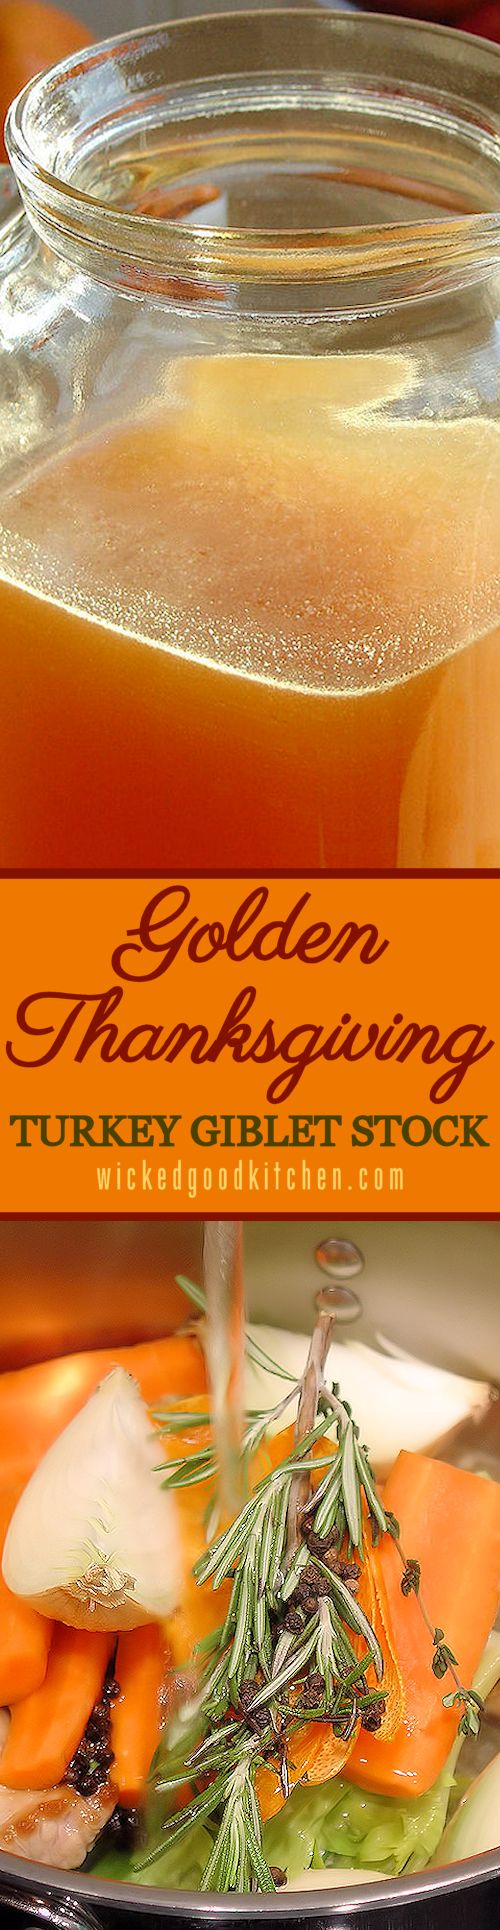 Golden Thanksgiving Turkey Giblet Stock ~ Simply the BEST turkey stock recipe! Perfect for #Thanksgiving and #Christmas #Holidays, our homemade stock with bright flavor notes gives an unbeatable rich turkey flavor to homemade gravy and stuffing. BONUS: Includes Recipes for Day-After Turkey Stock and How To Make Homemade Bouillon.